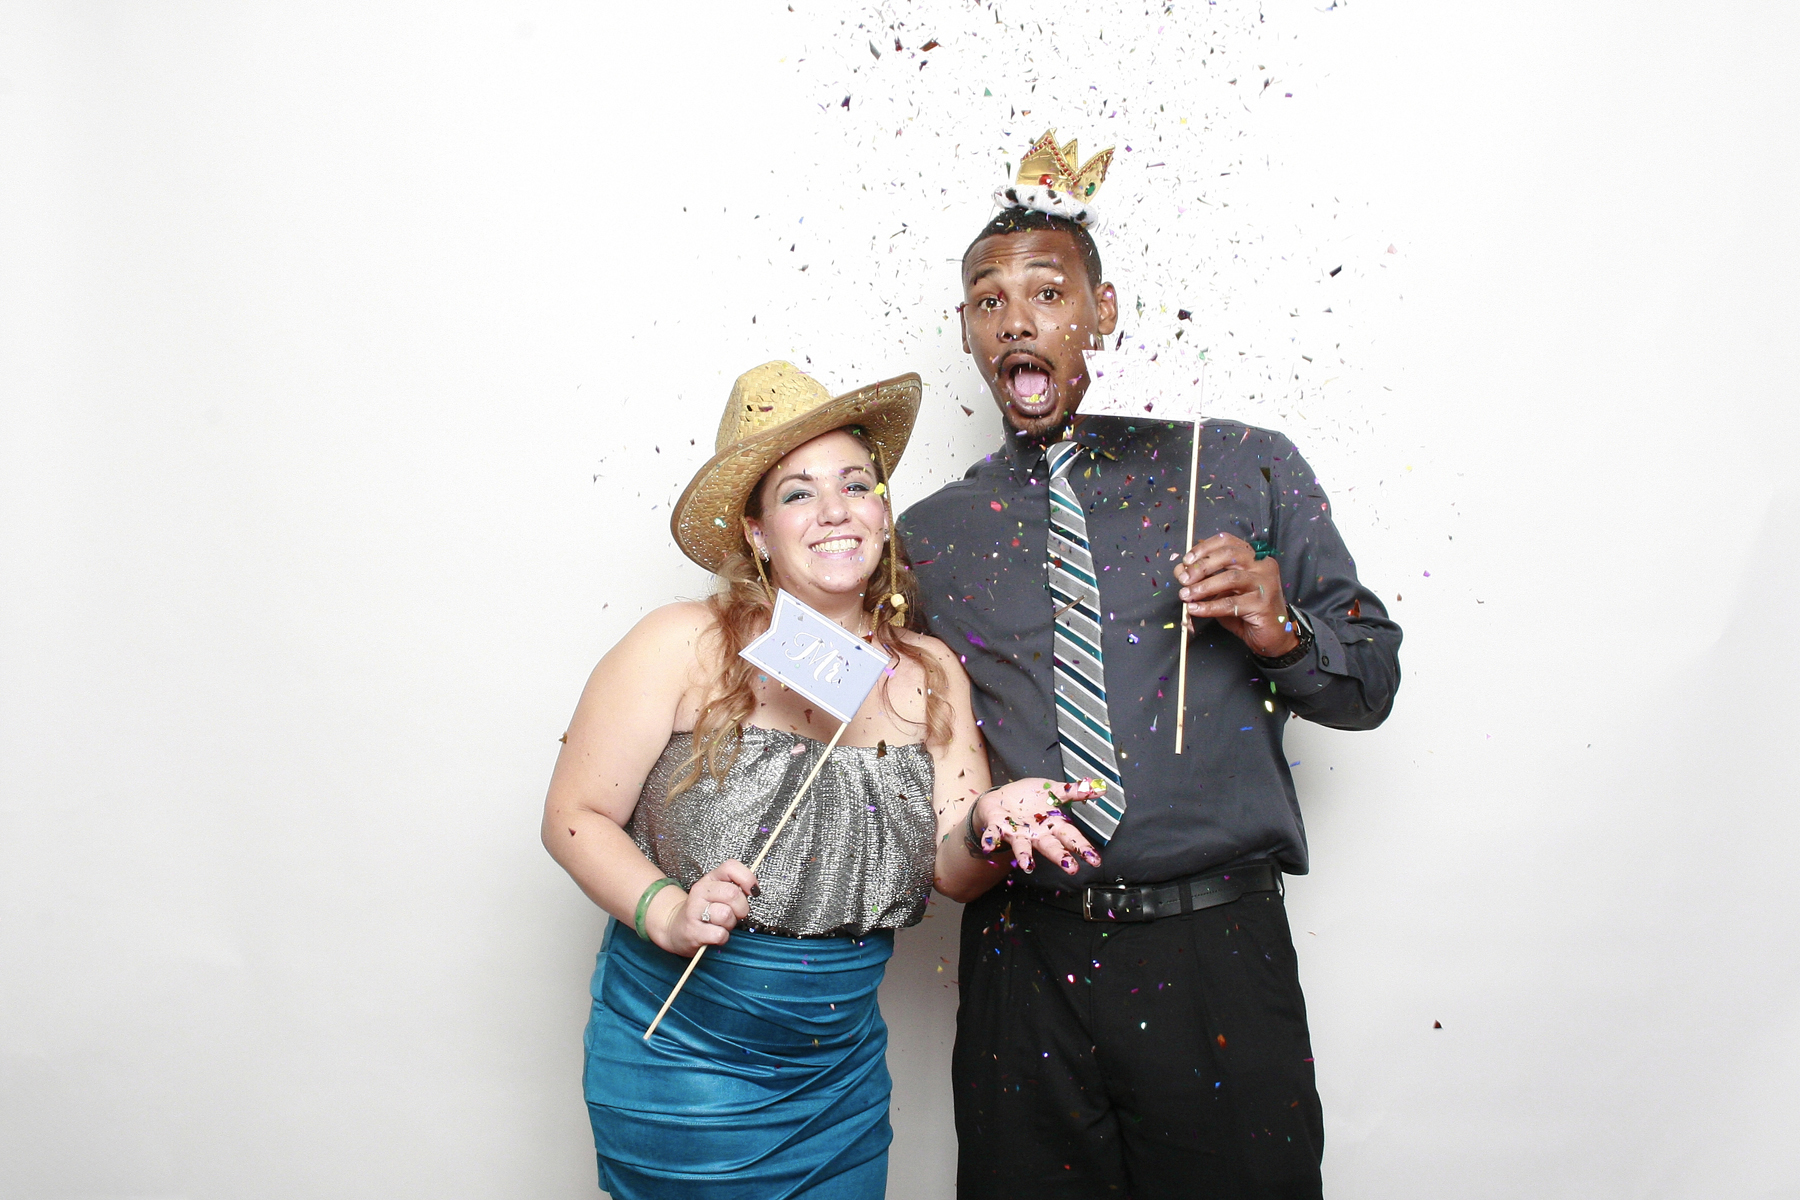 Couple in new york photo booth using confetti